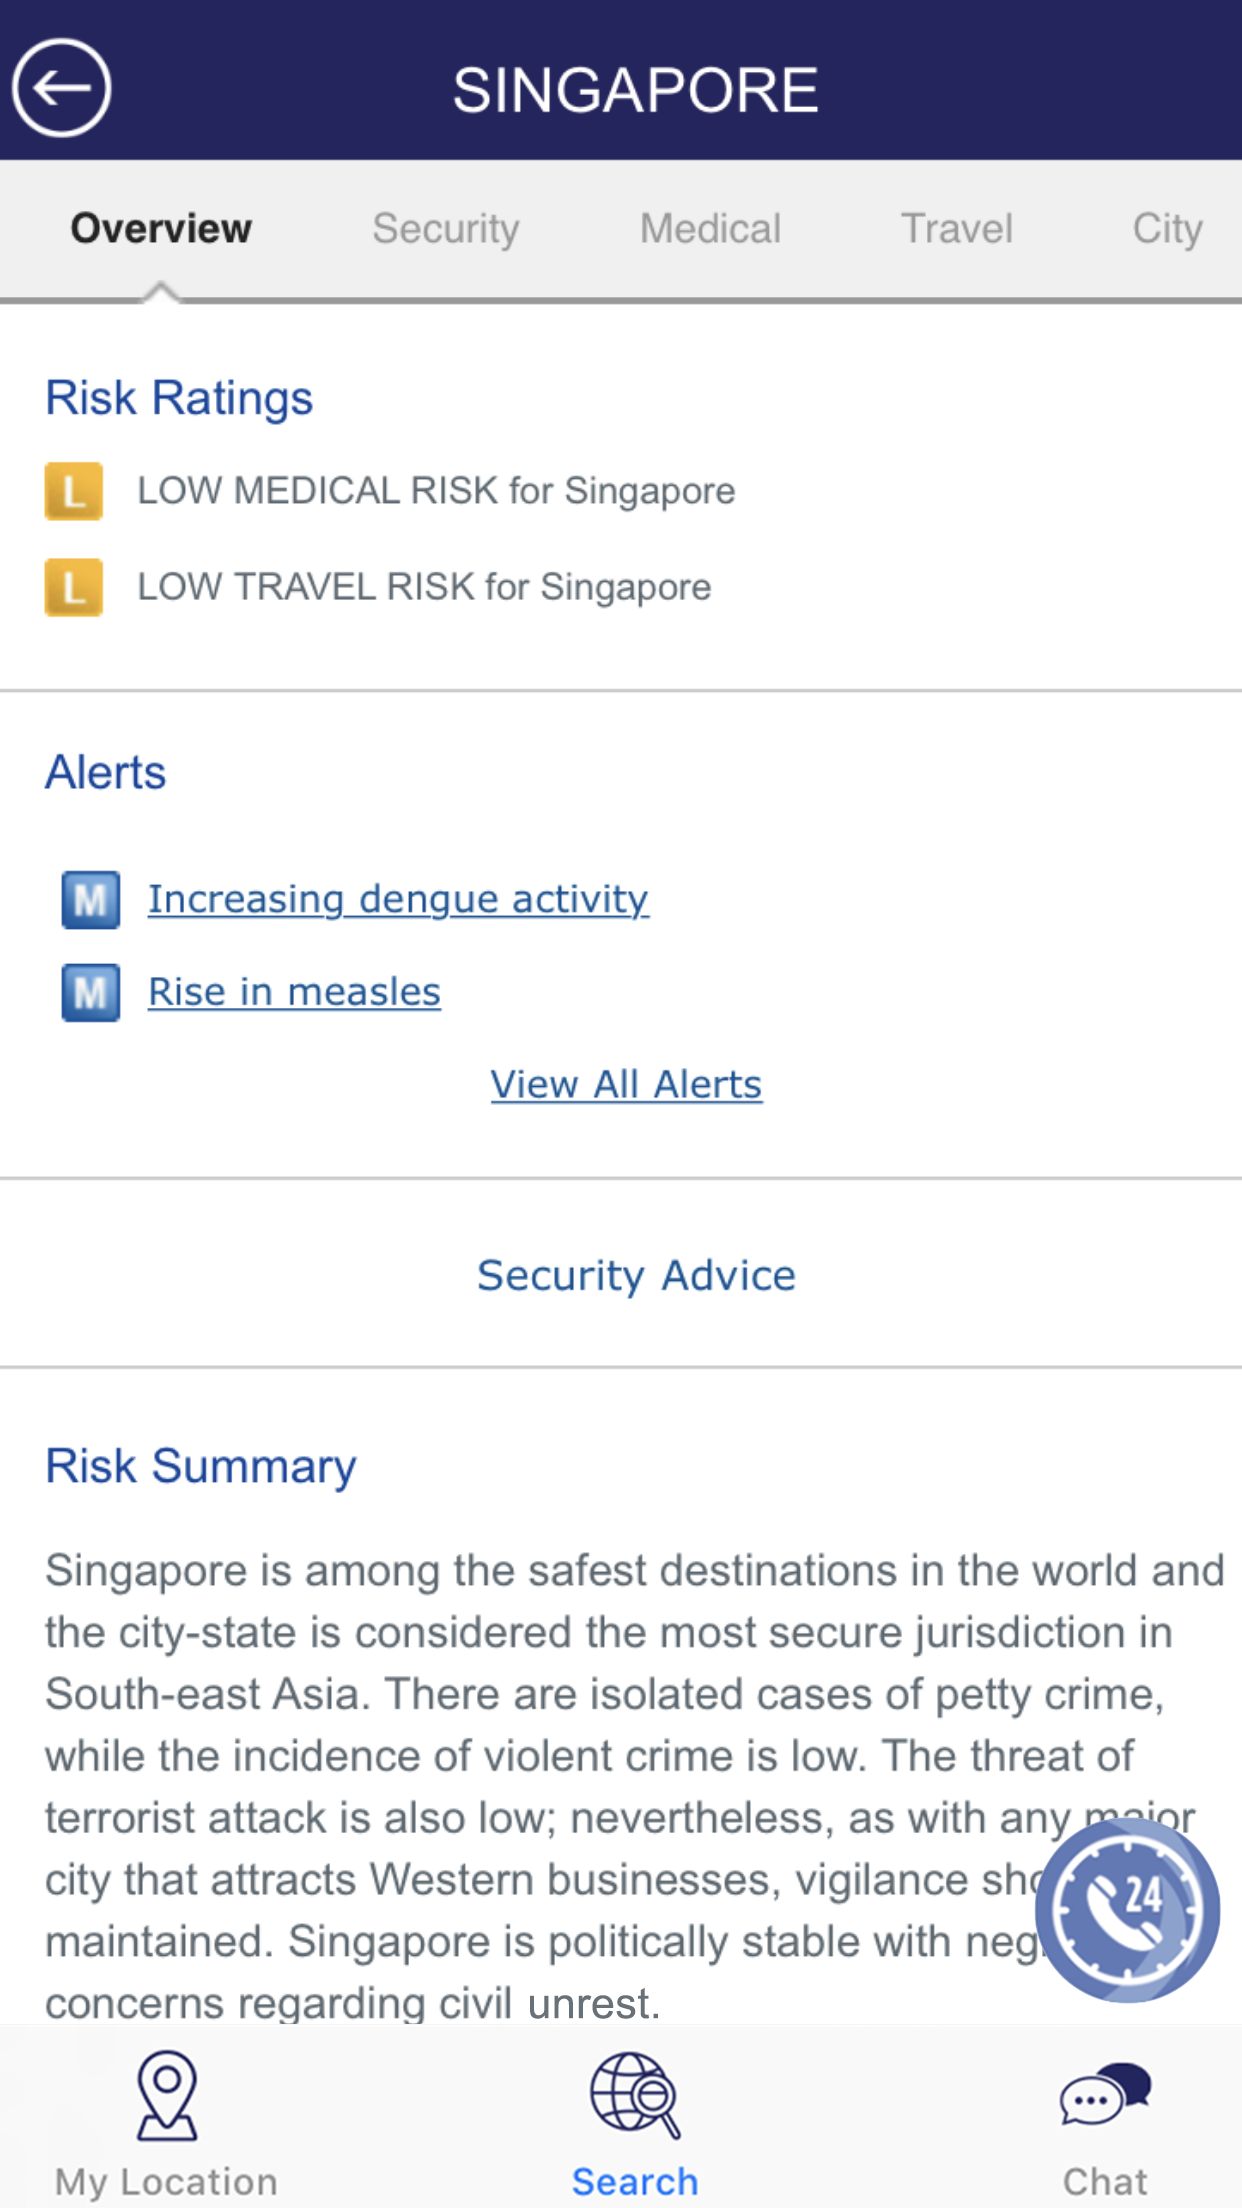 Singapore Risk Overview